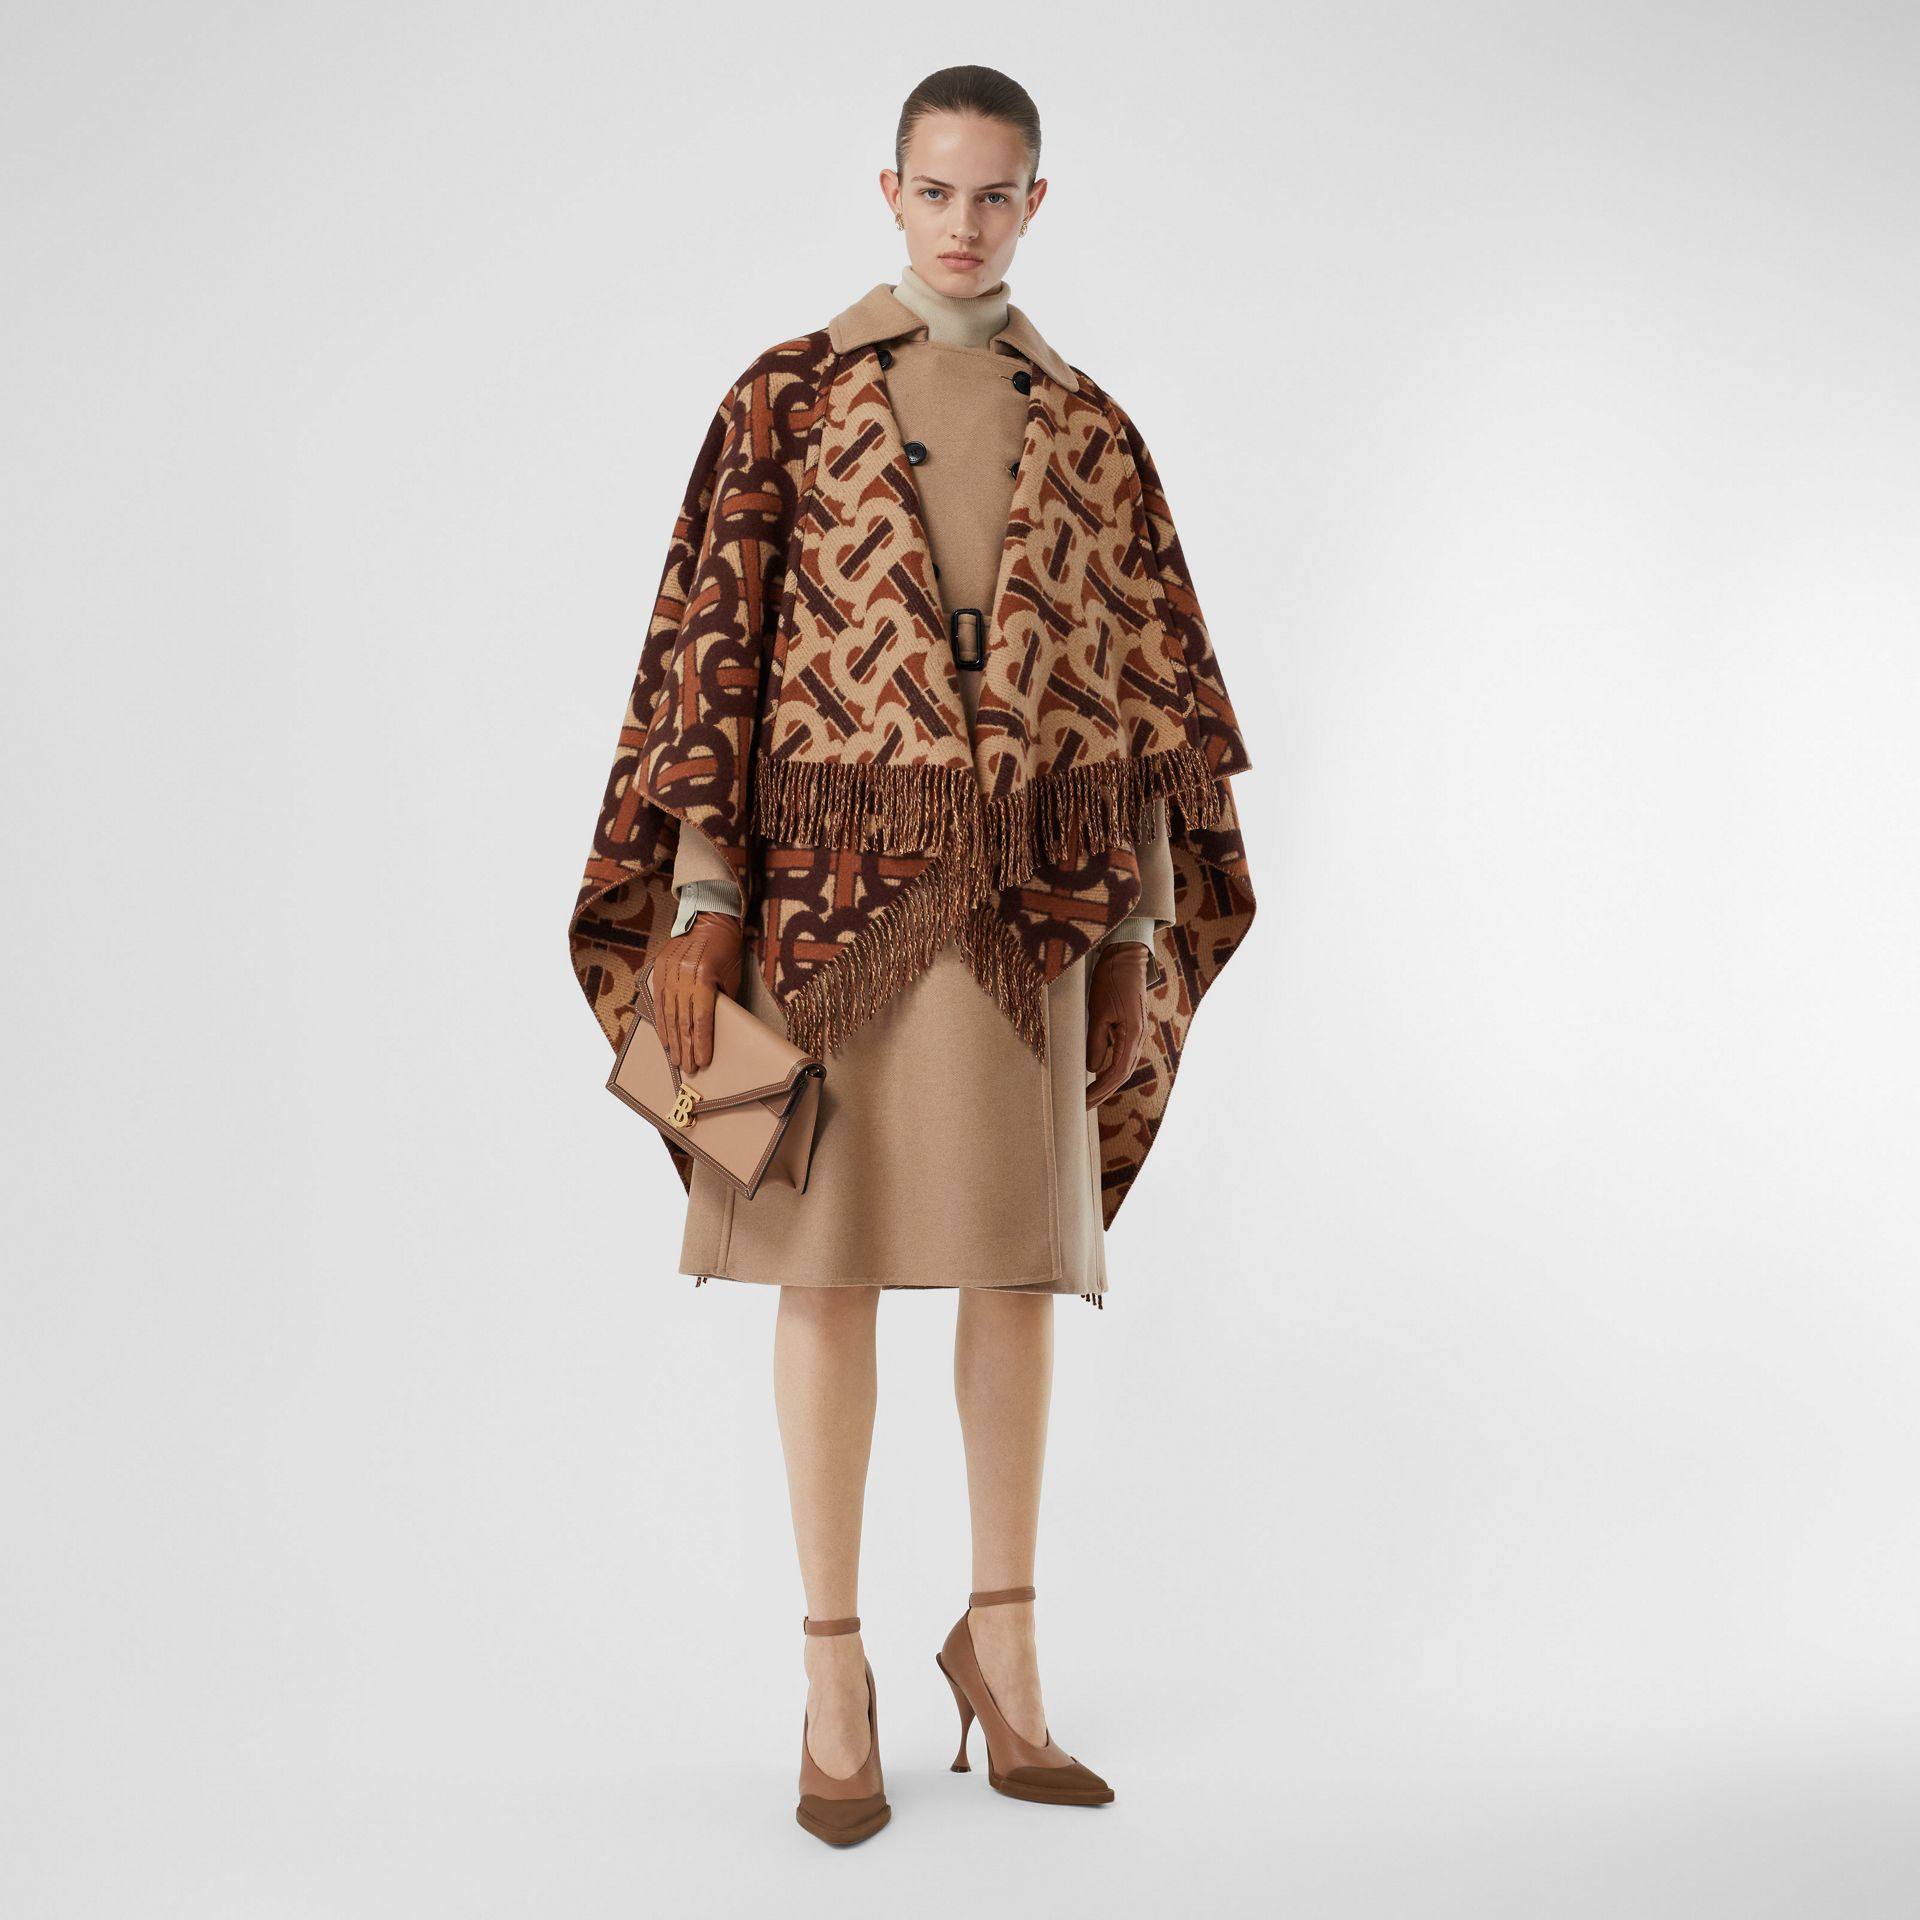 Monogram Merino Wool Cashmere Jacquard Cape in Dark Mocha - Women | Burberry United Kingdom - gallery image 0